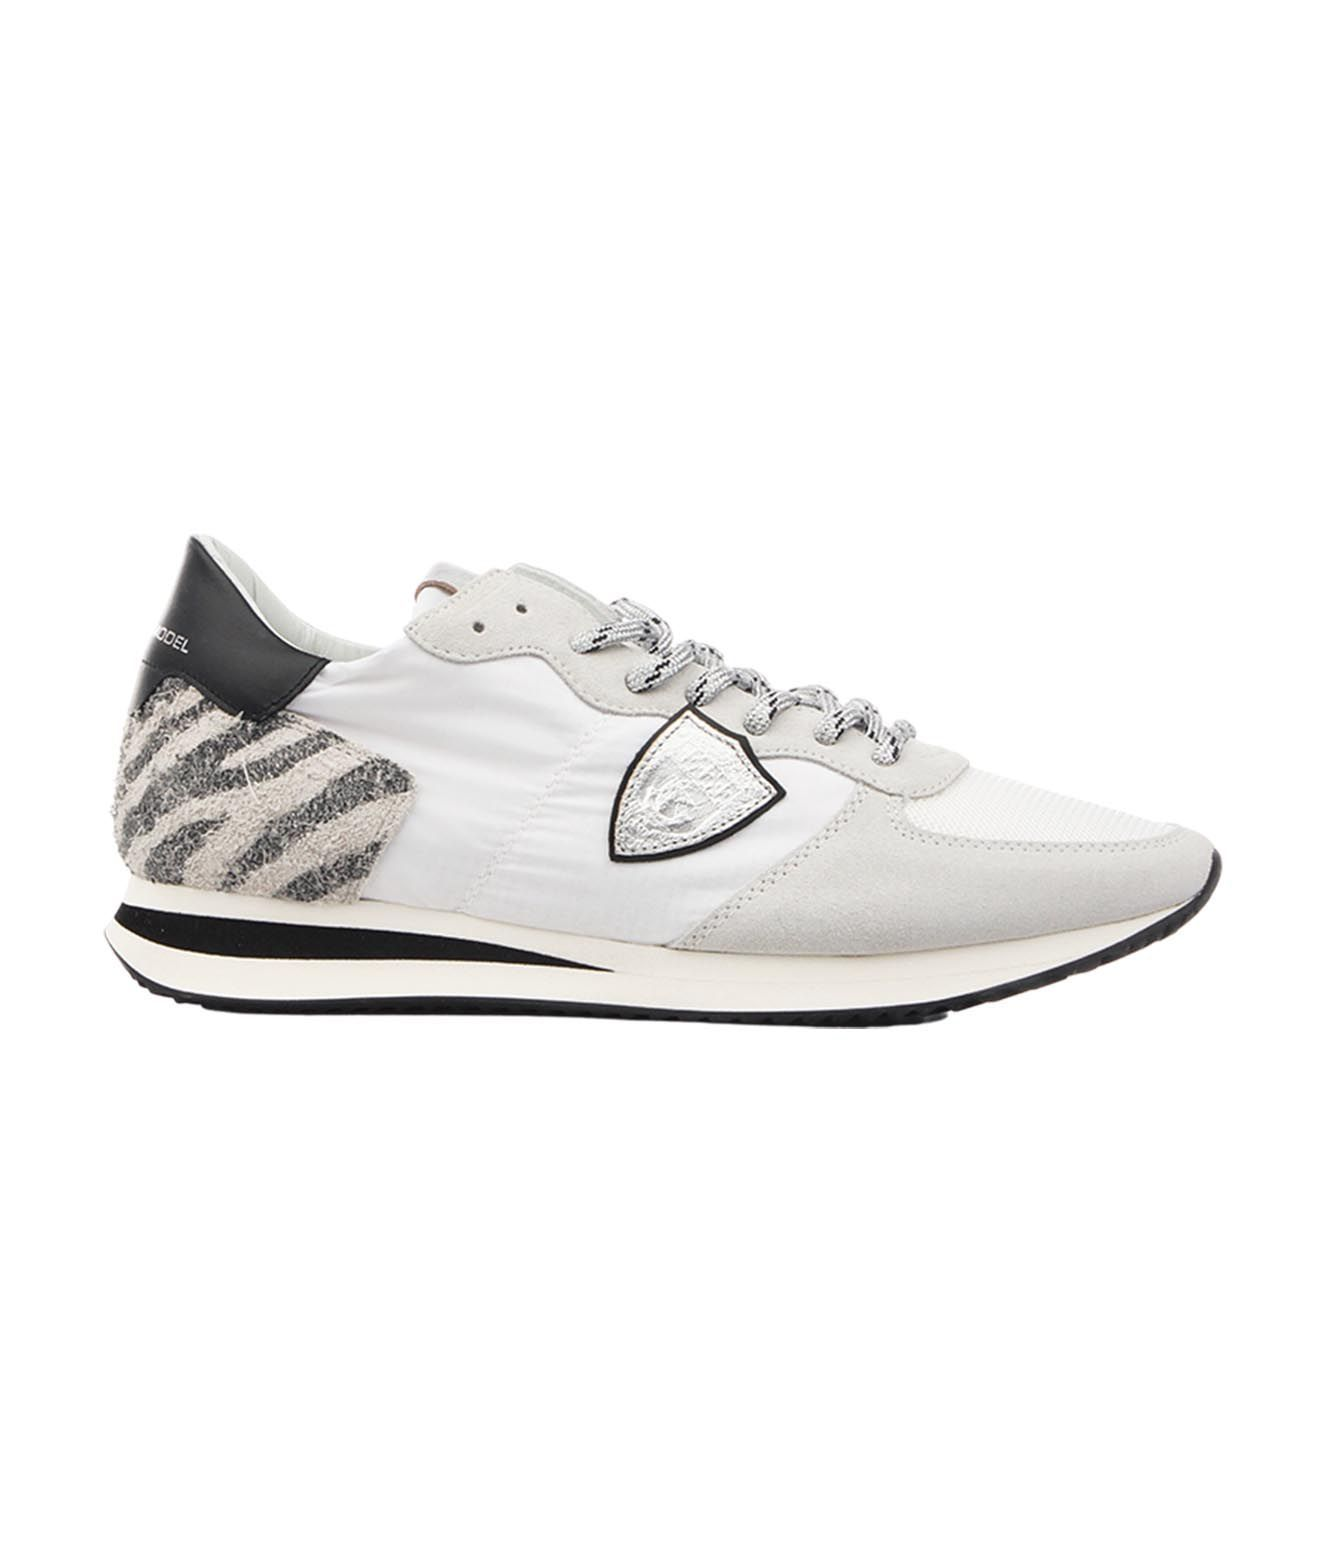 Philippe Model Leathers PHILIPPE MODEL WOMEN'S TZLDWA10 WHITE OTHER MATERIALS SNEAKERS